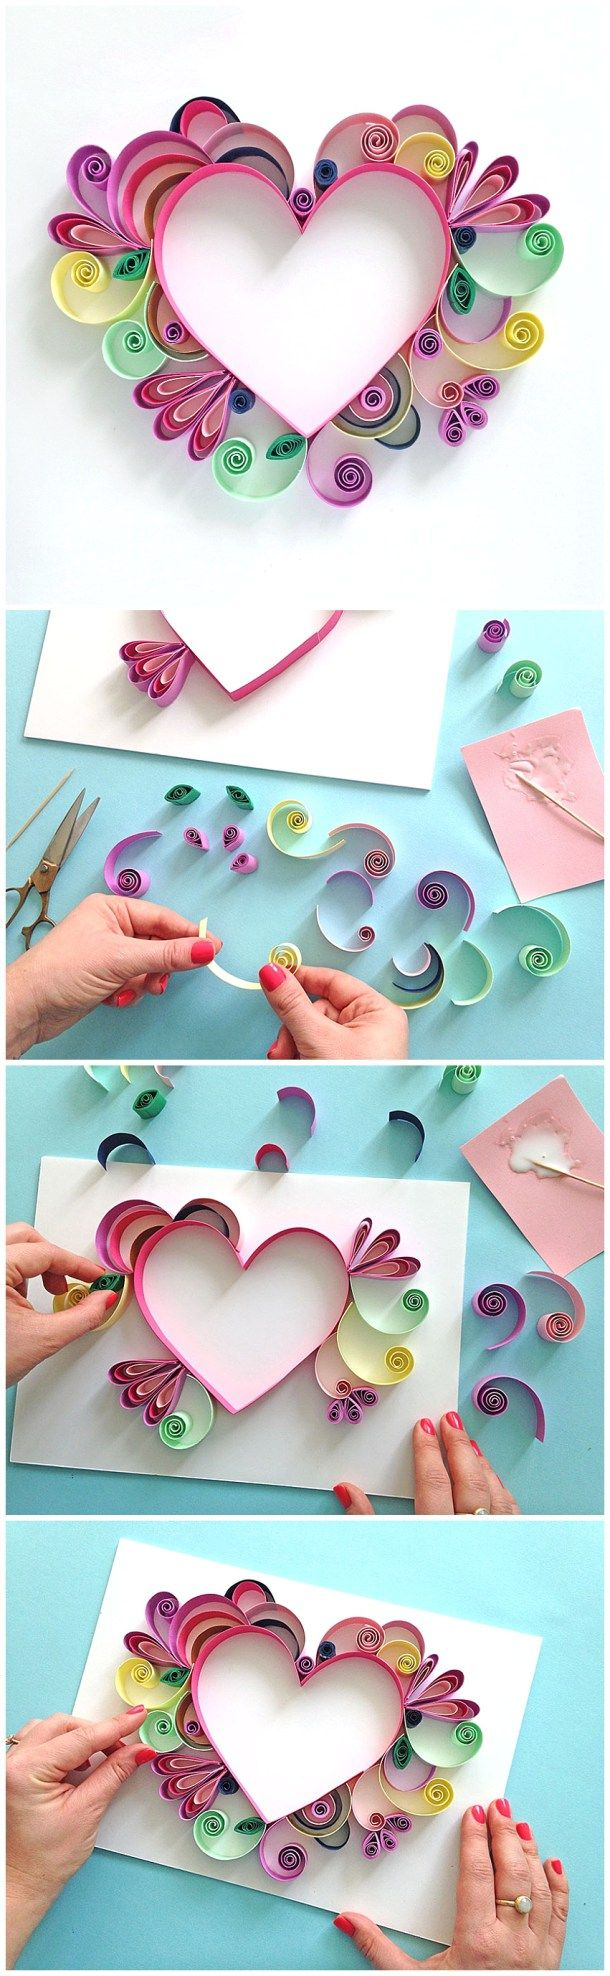 Arte Al Dia De La Madre The Best Easy Diy Mother S Day Gifts And Treats Ideas Holiday